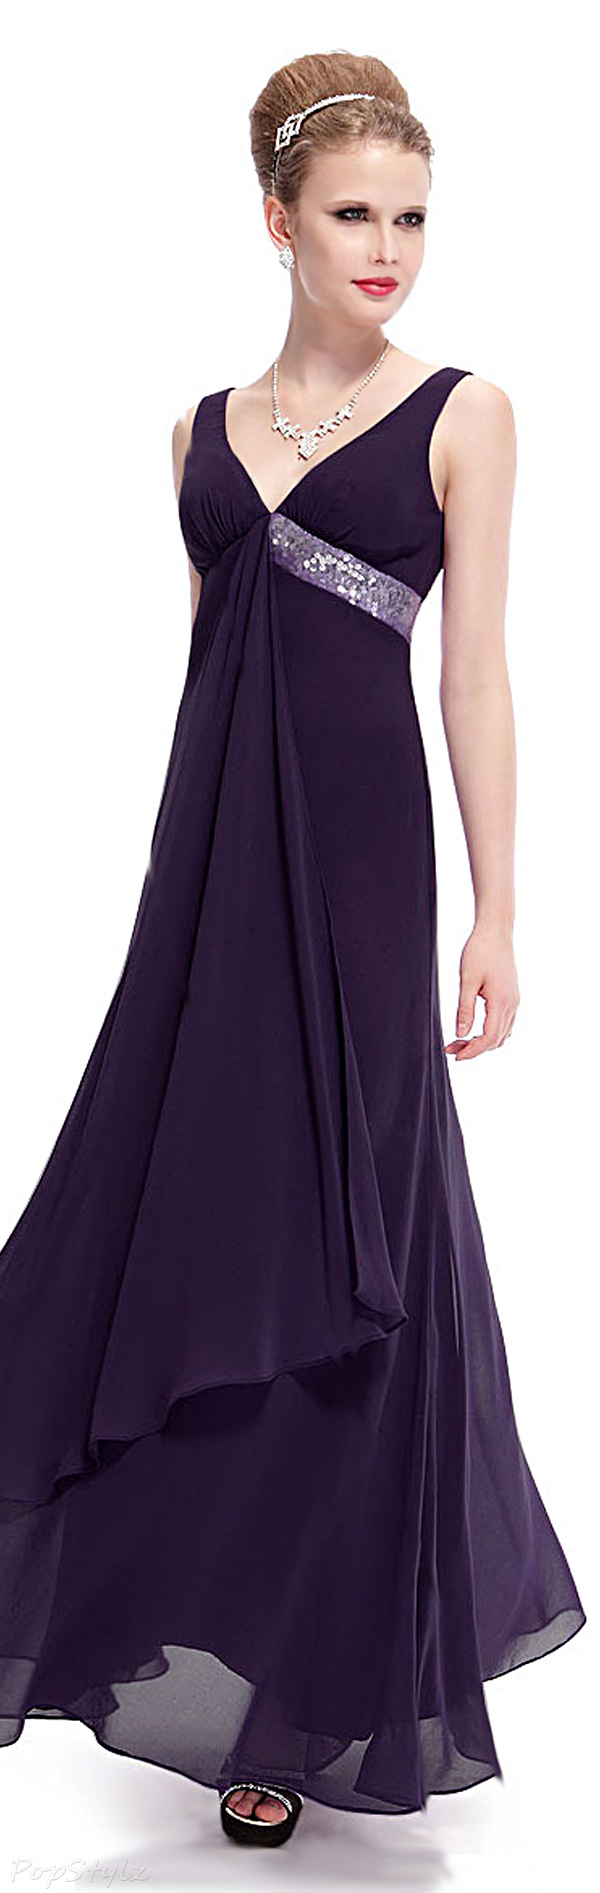 Ever Pretty 09981 Purple Flowing Sequined Evening Dress